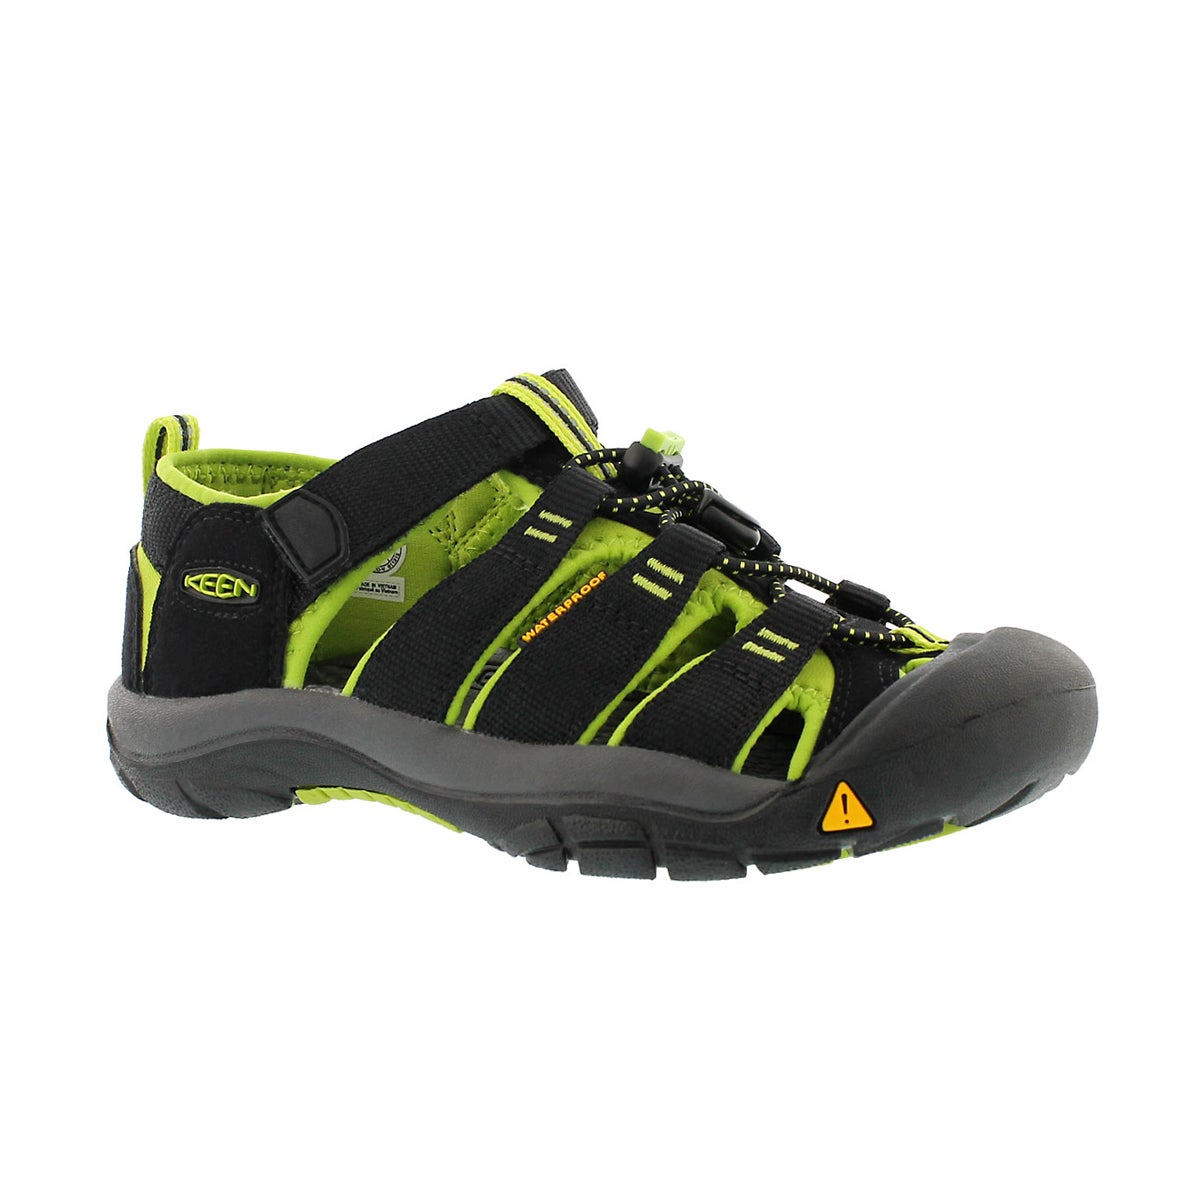 Bys Newport H2 Electric blk/lime sandal